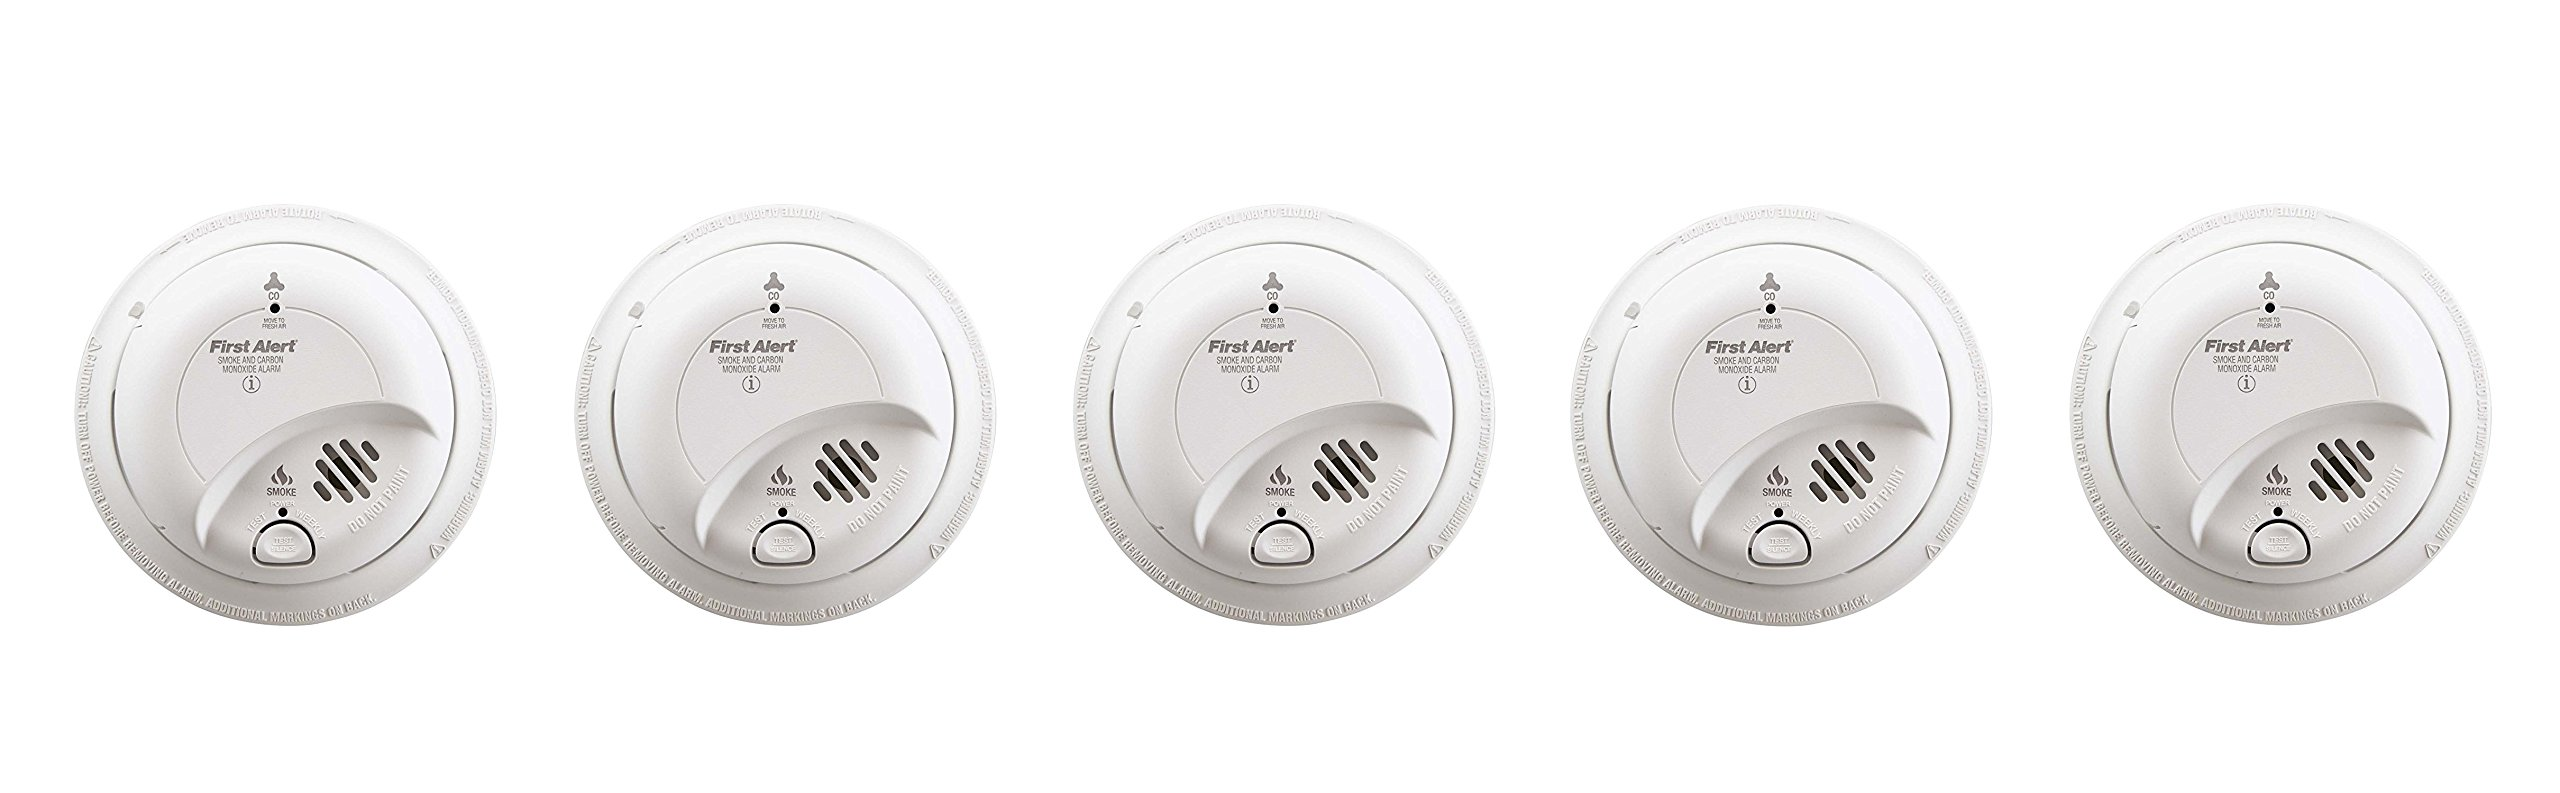 First Alert BRK SC-9120B cyGQwj Hardwired Smoke and Carbon Monoxide Alarm with Battery Backup, 5 Units